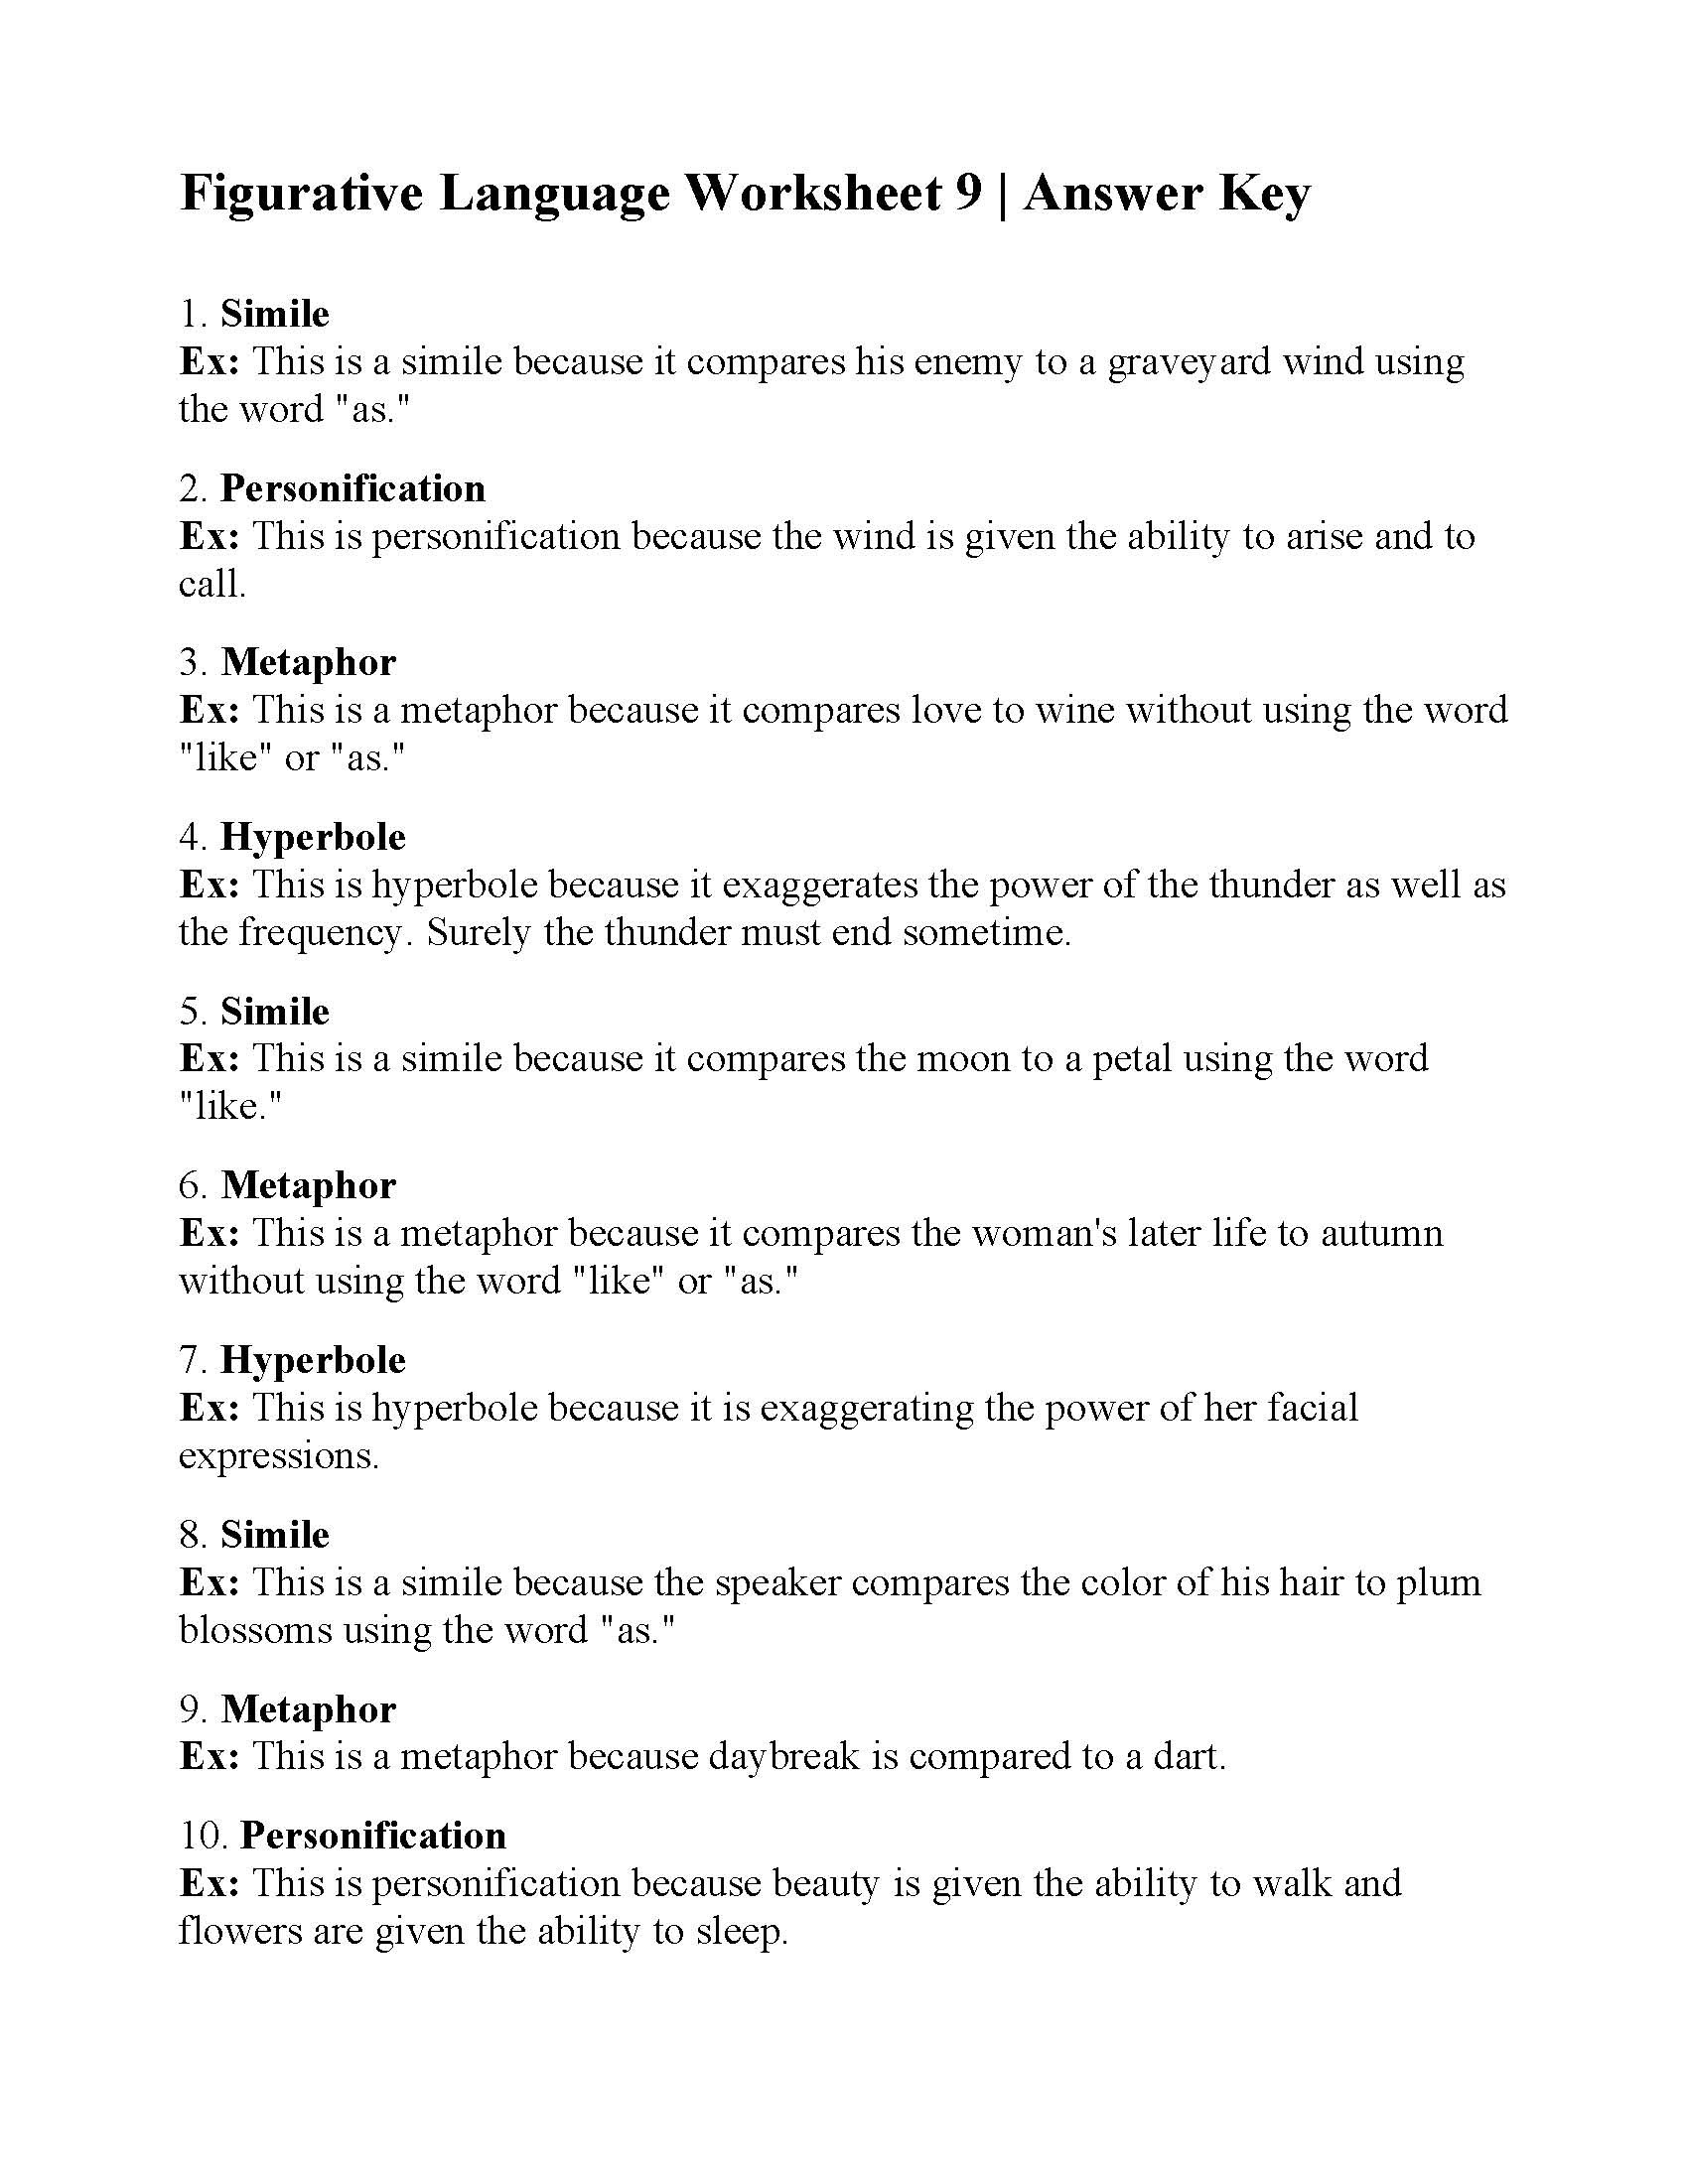 Free Printable Figurative Language Worksheets Figurative Language Worksheet Answers Worksheets with